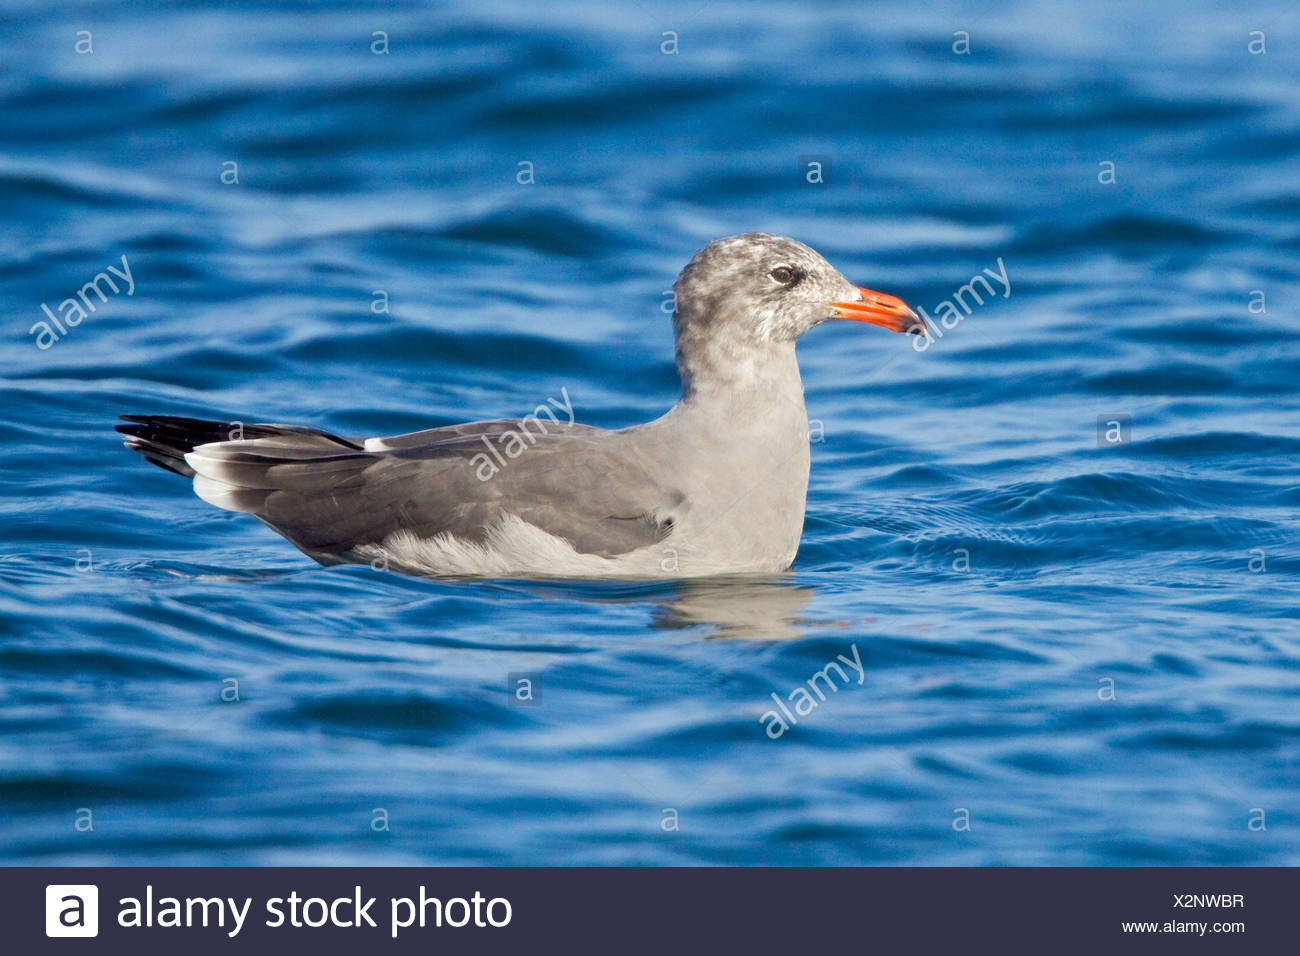 Heermann's Gull (Larus heermanni) swimming on the ocean near Washington, USA. - Stock Image